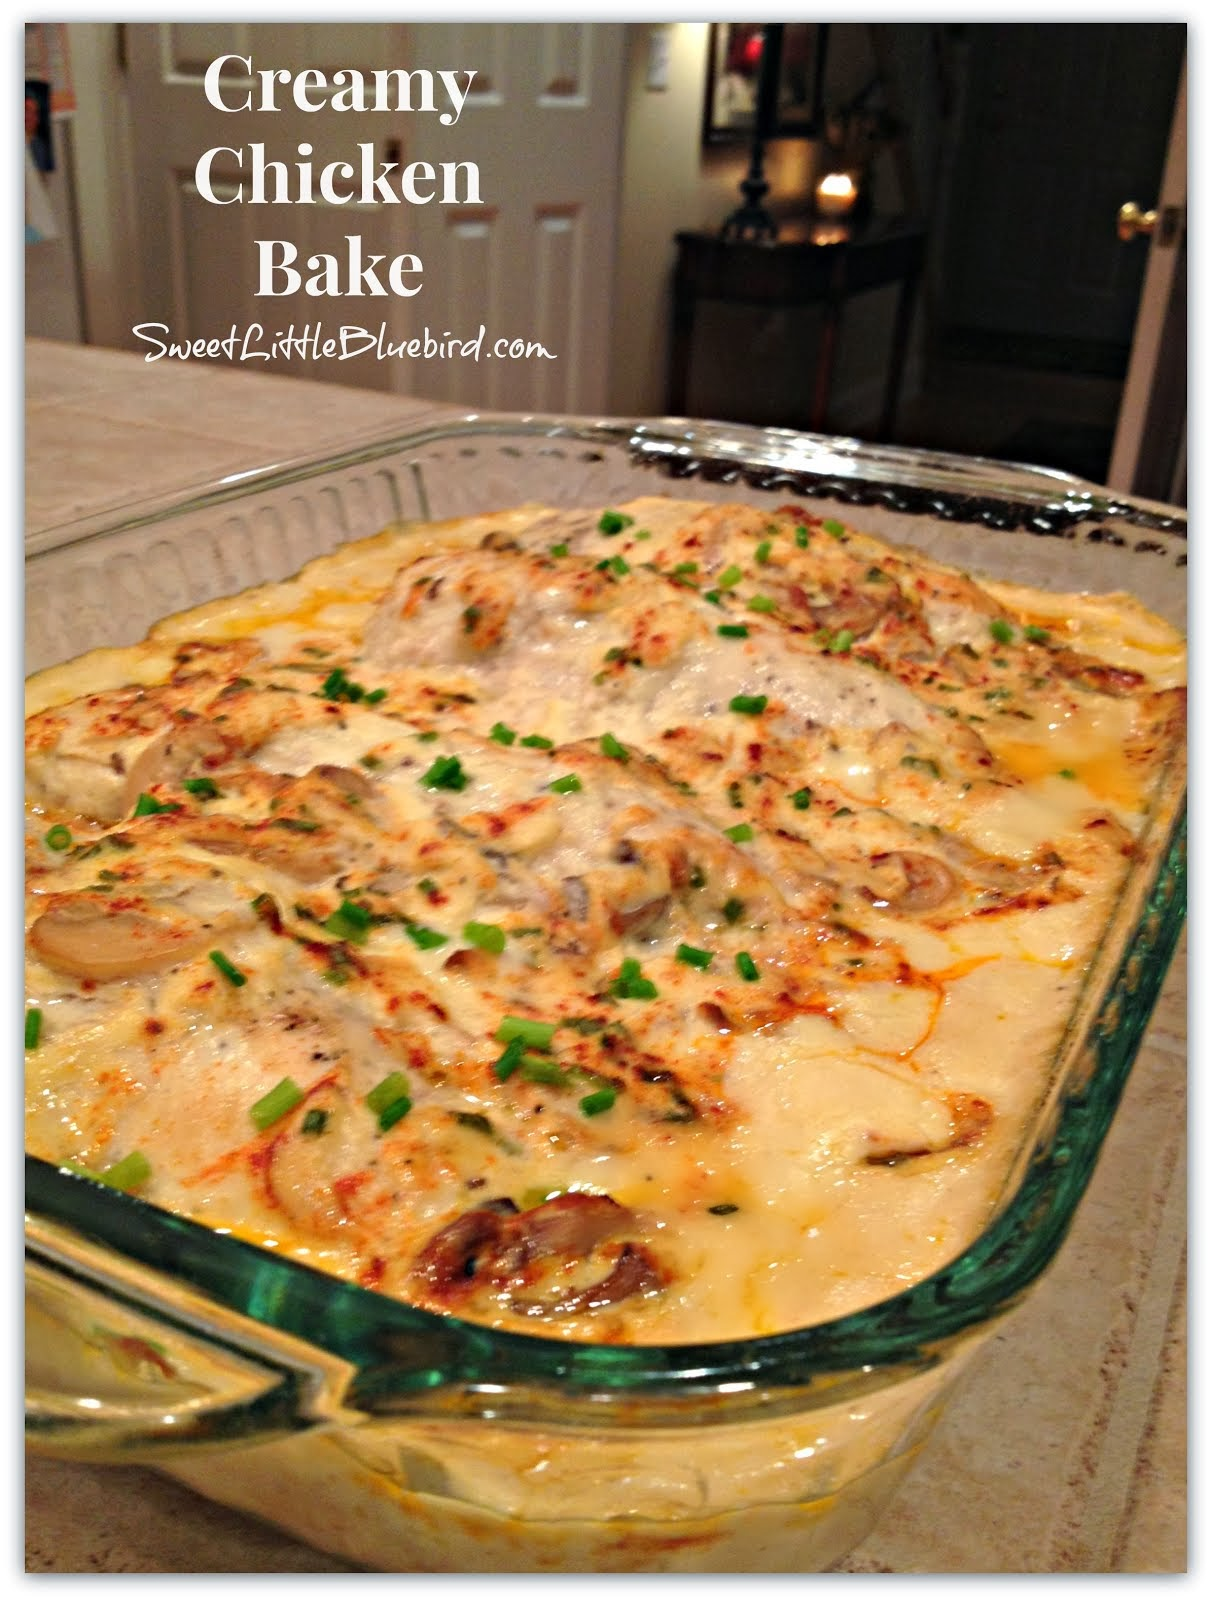 Creamy Chicken Bake - Family Favorite!!!